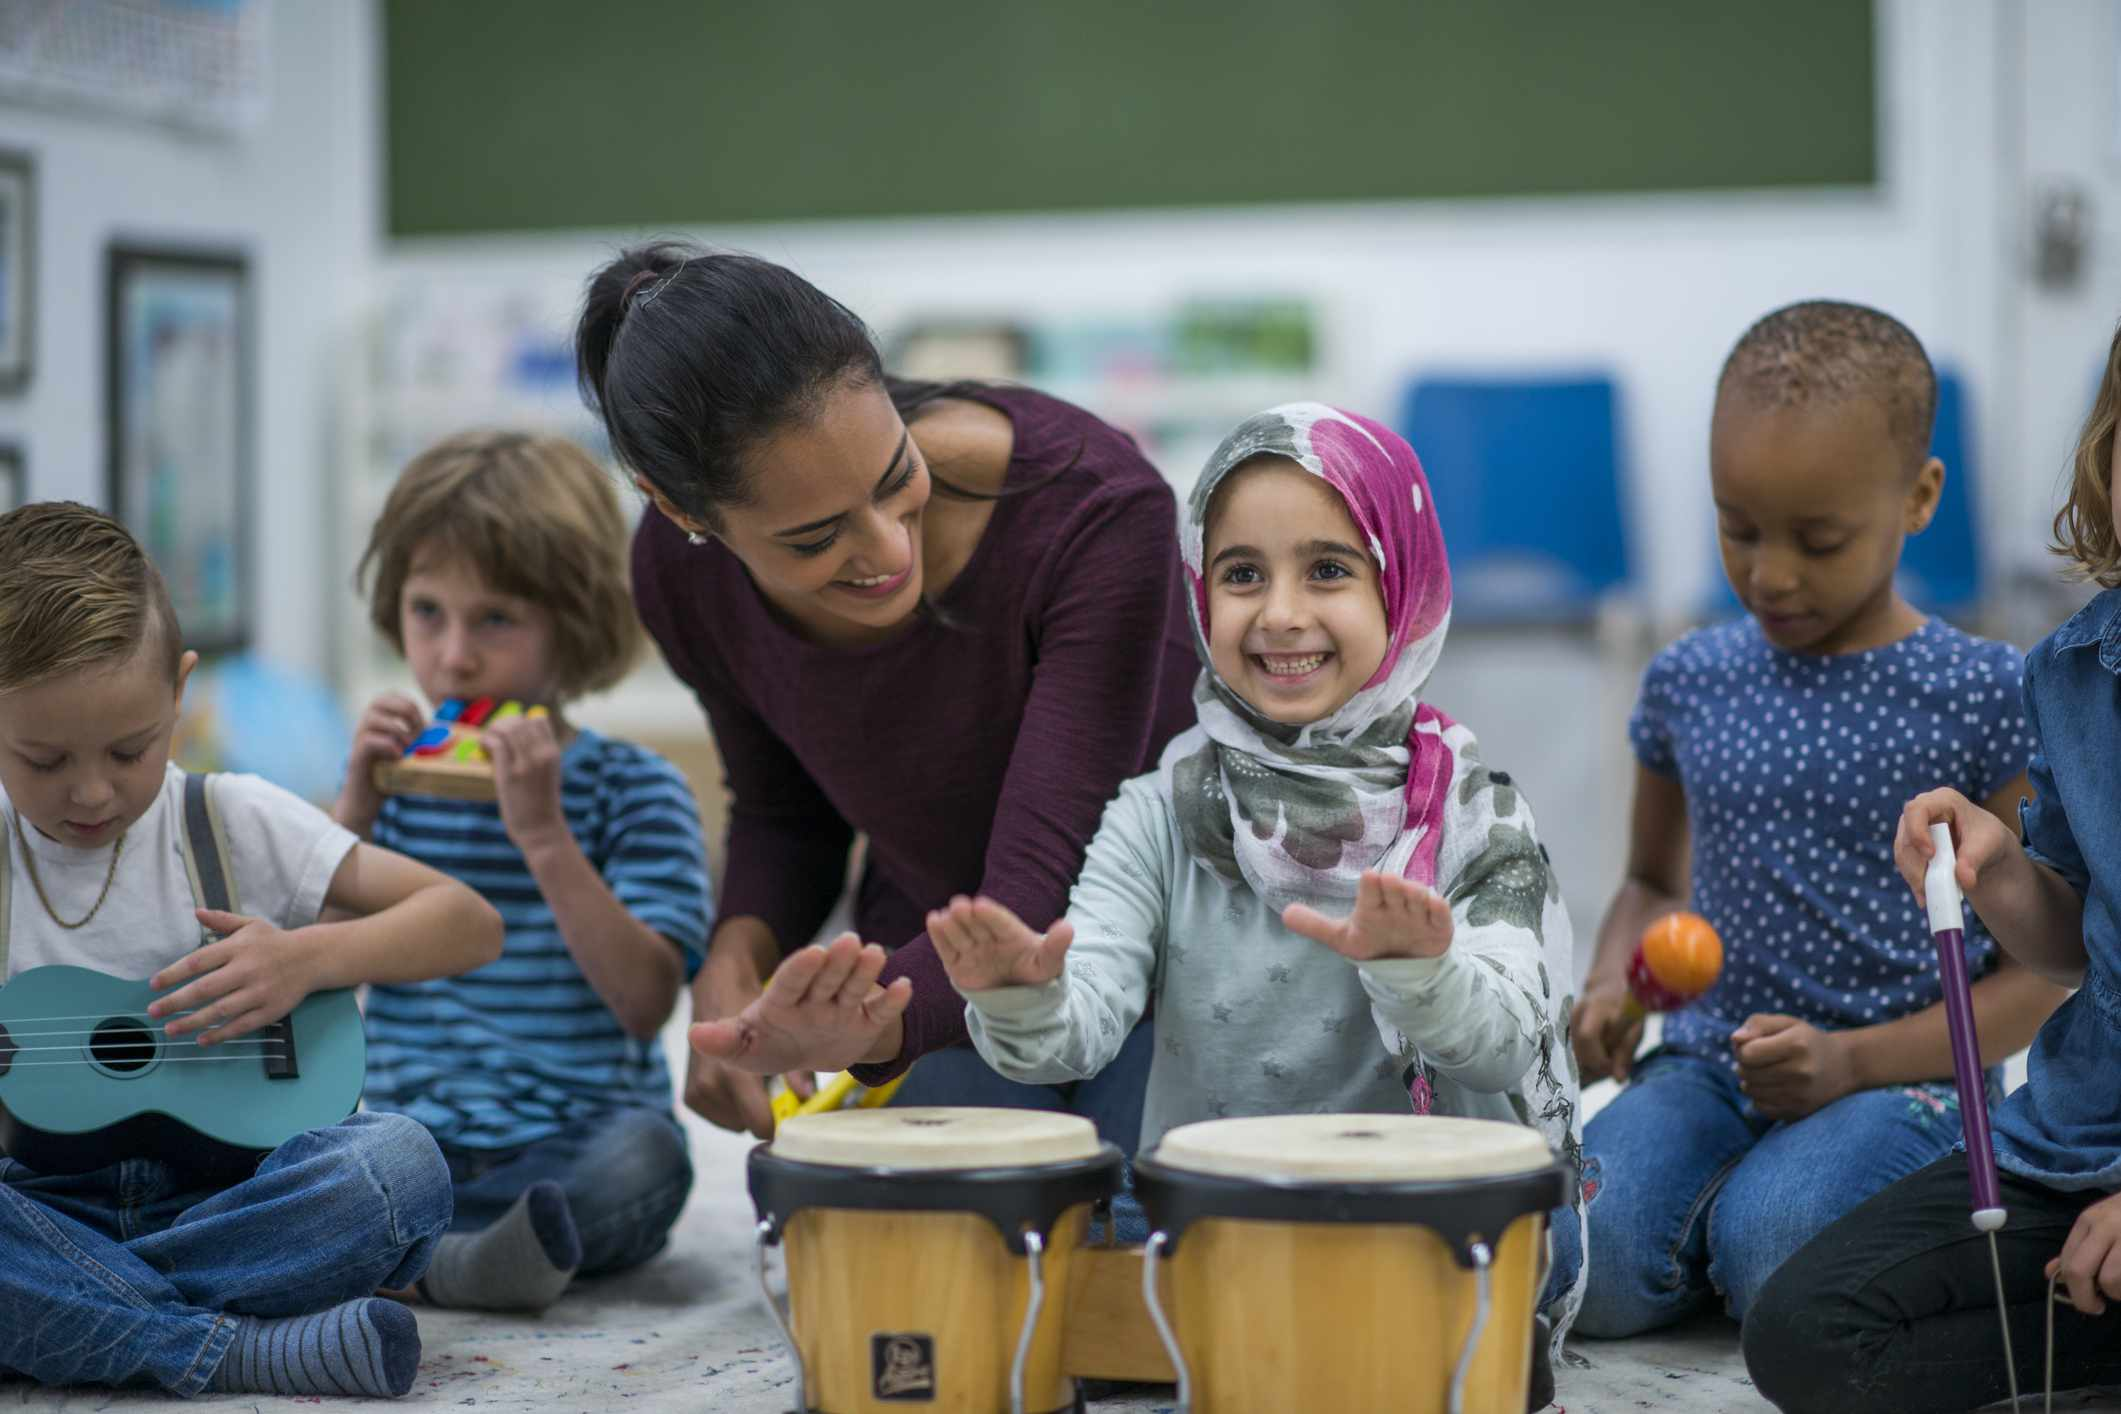 Little girl beating congas with music instructor in class at school with her friends